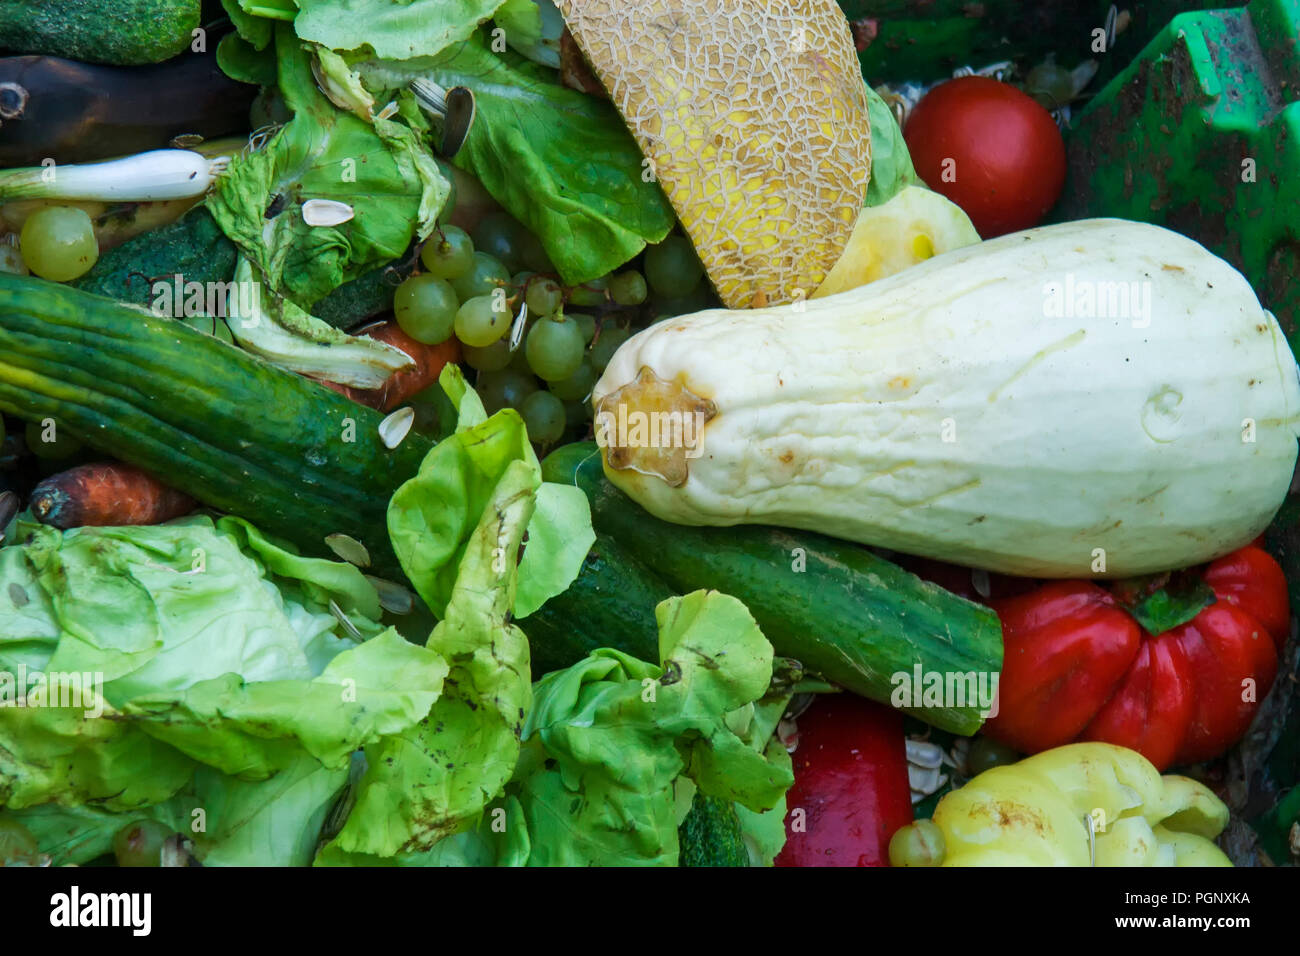 Mixed vegetables for cooking and animal feeding. Stock Photo